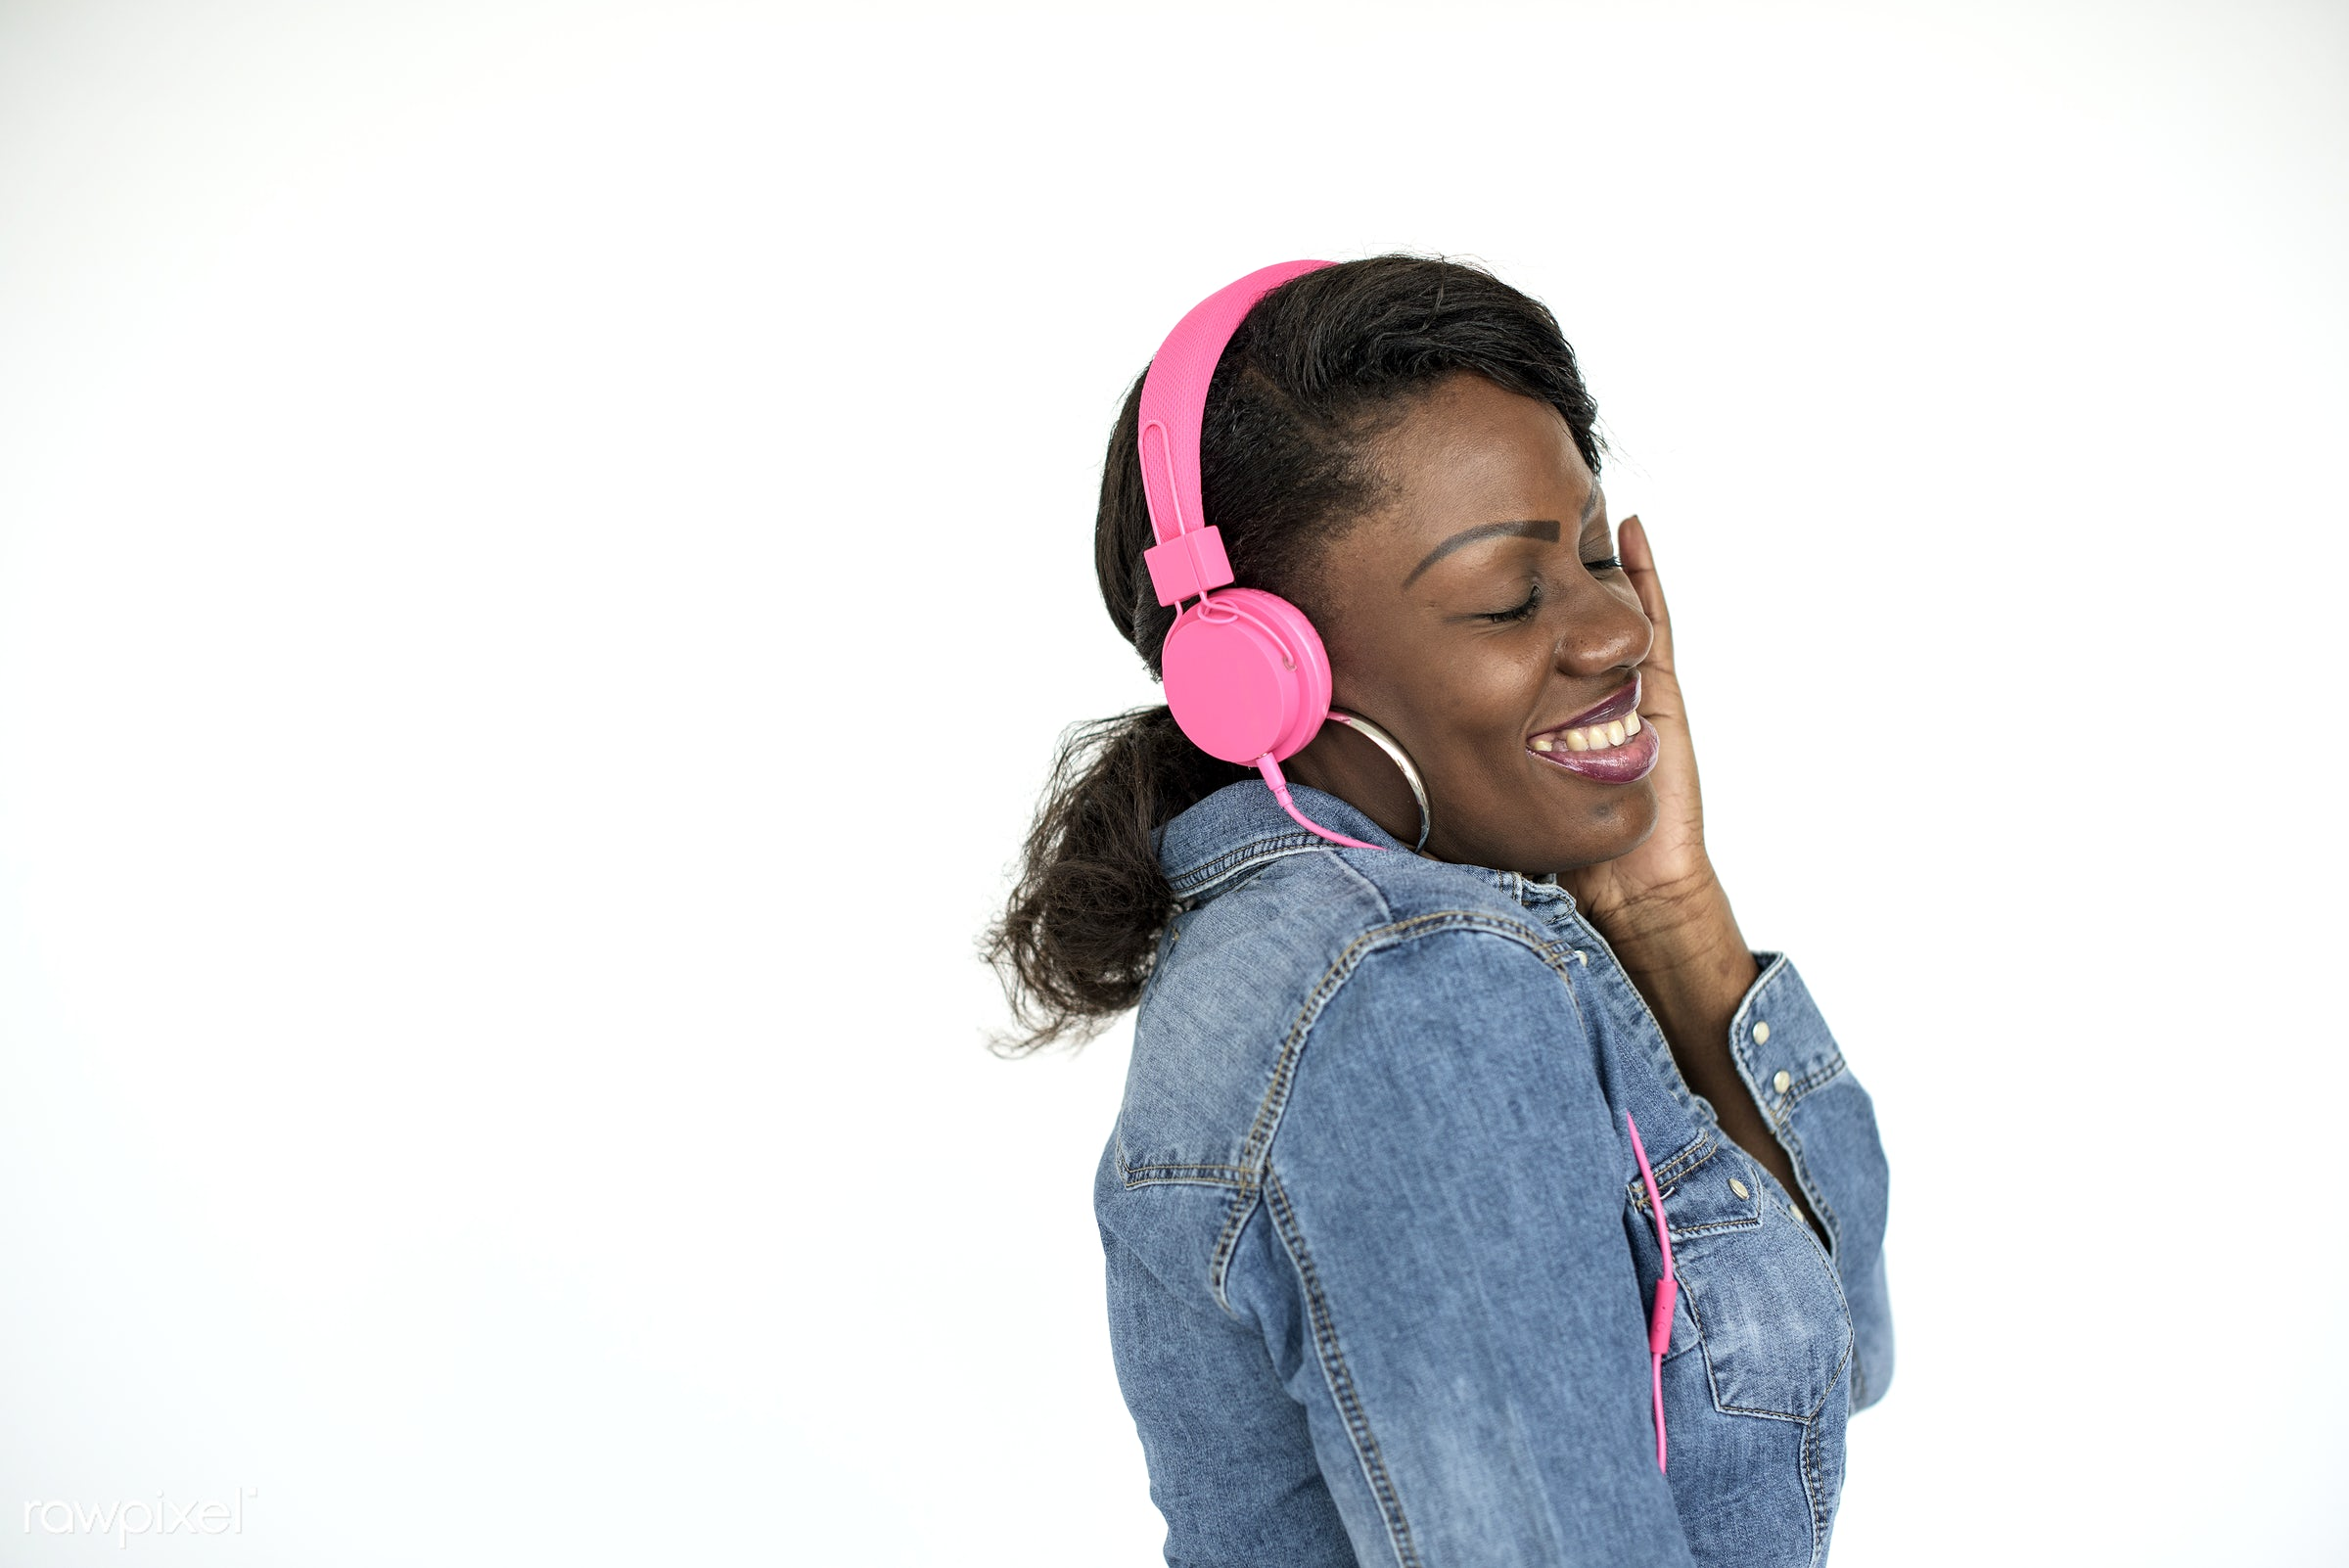 studio, expression, person, joy, isolated on white, people, girl, woman, happy, casual, cheerful, earrings, music, isolated...